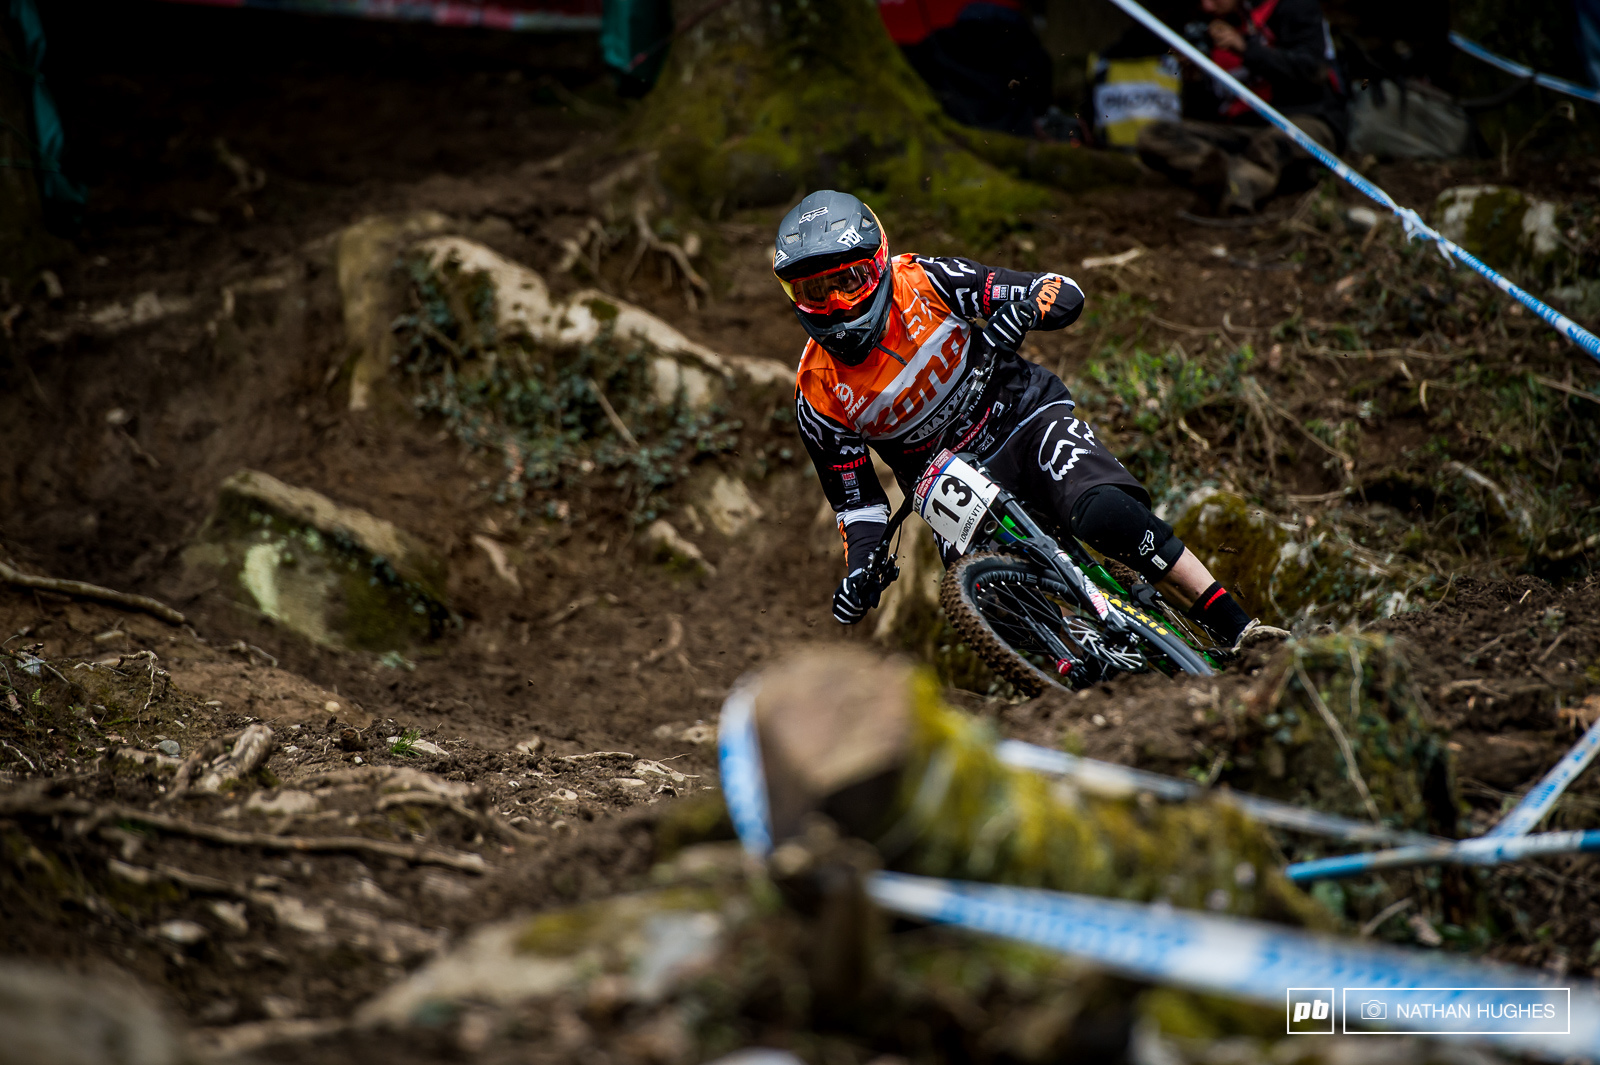 Connor Fearon has seemed to fly under the radar so far at this race but clearly has what it takes to go far tomorrow judging by a flat-out run to seal an 8th place qualie.